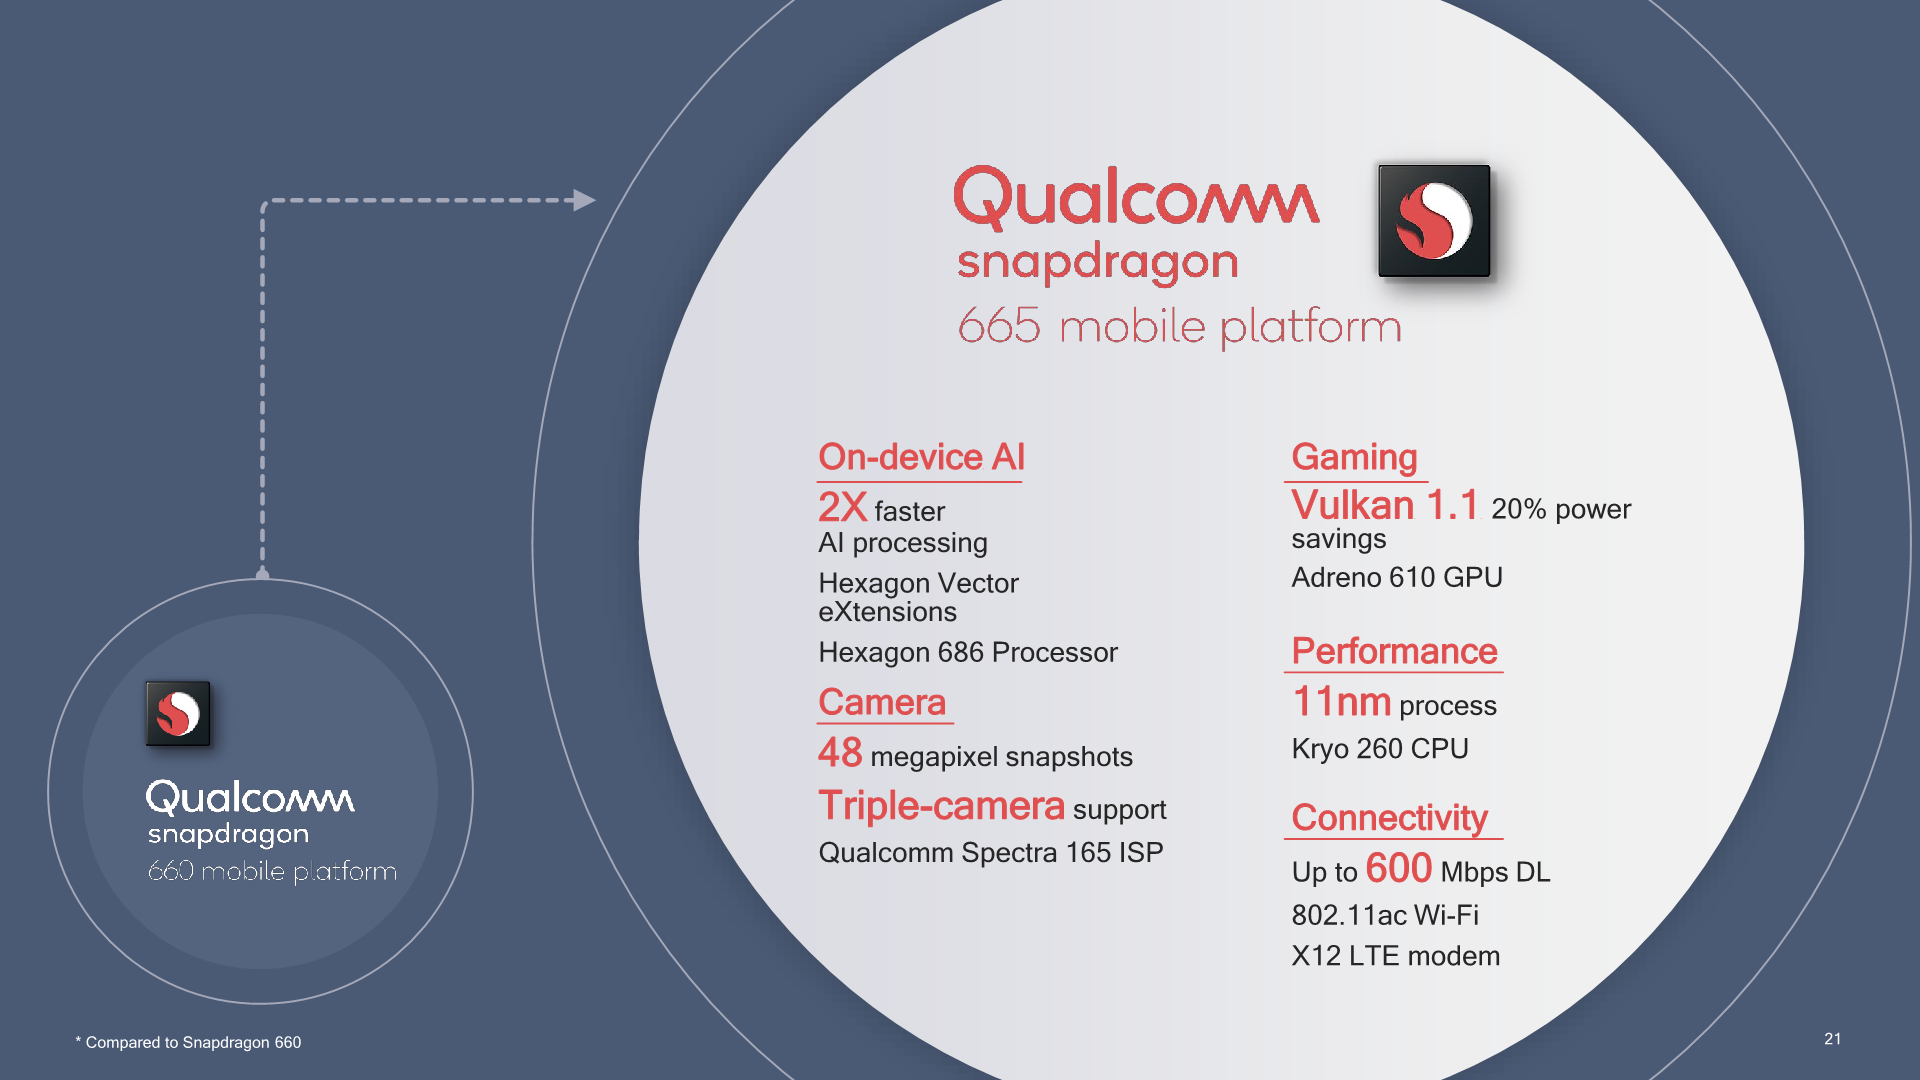 Qualcomm Snapdragon 665 & 730 mid-range chips released